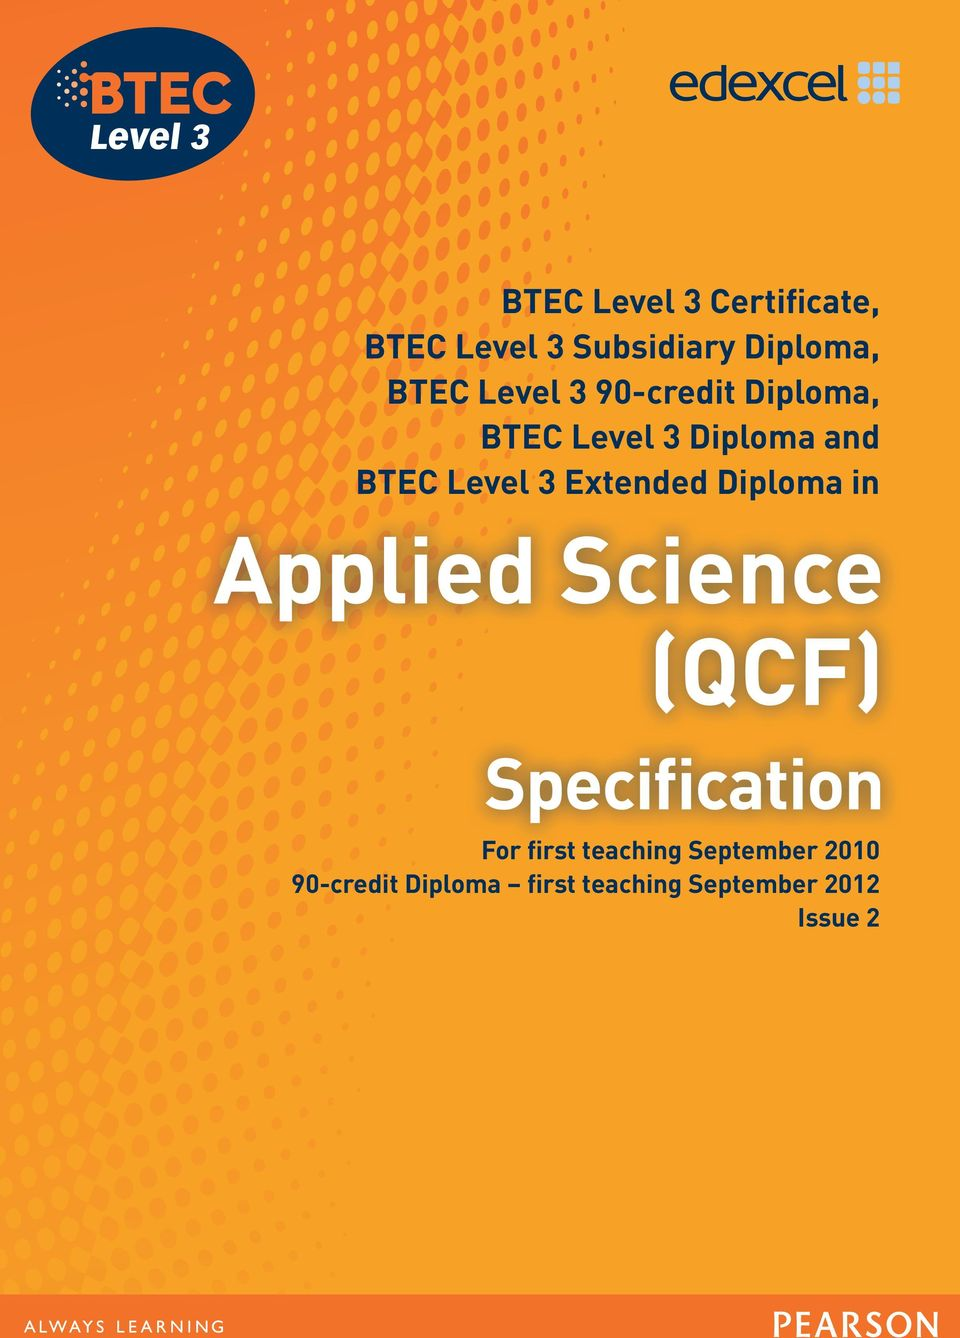 BTEC Level 3 Extended Diploma in For first teaching